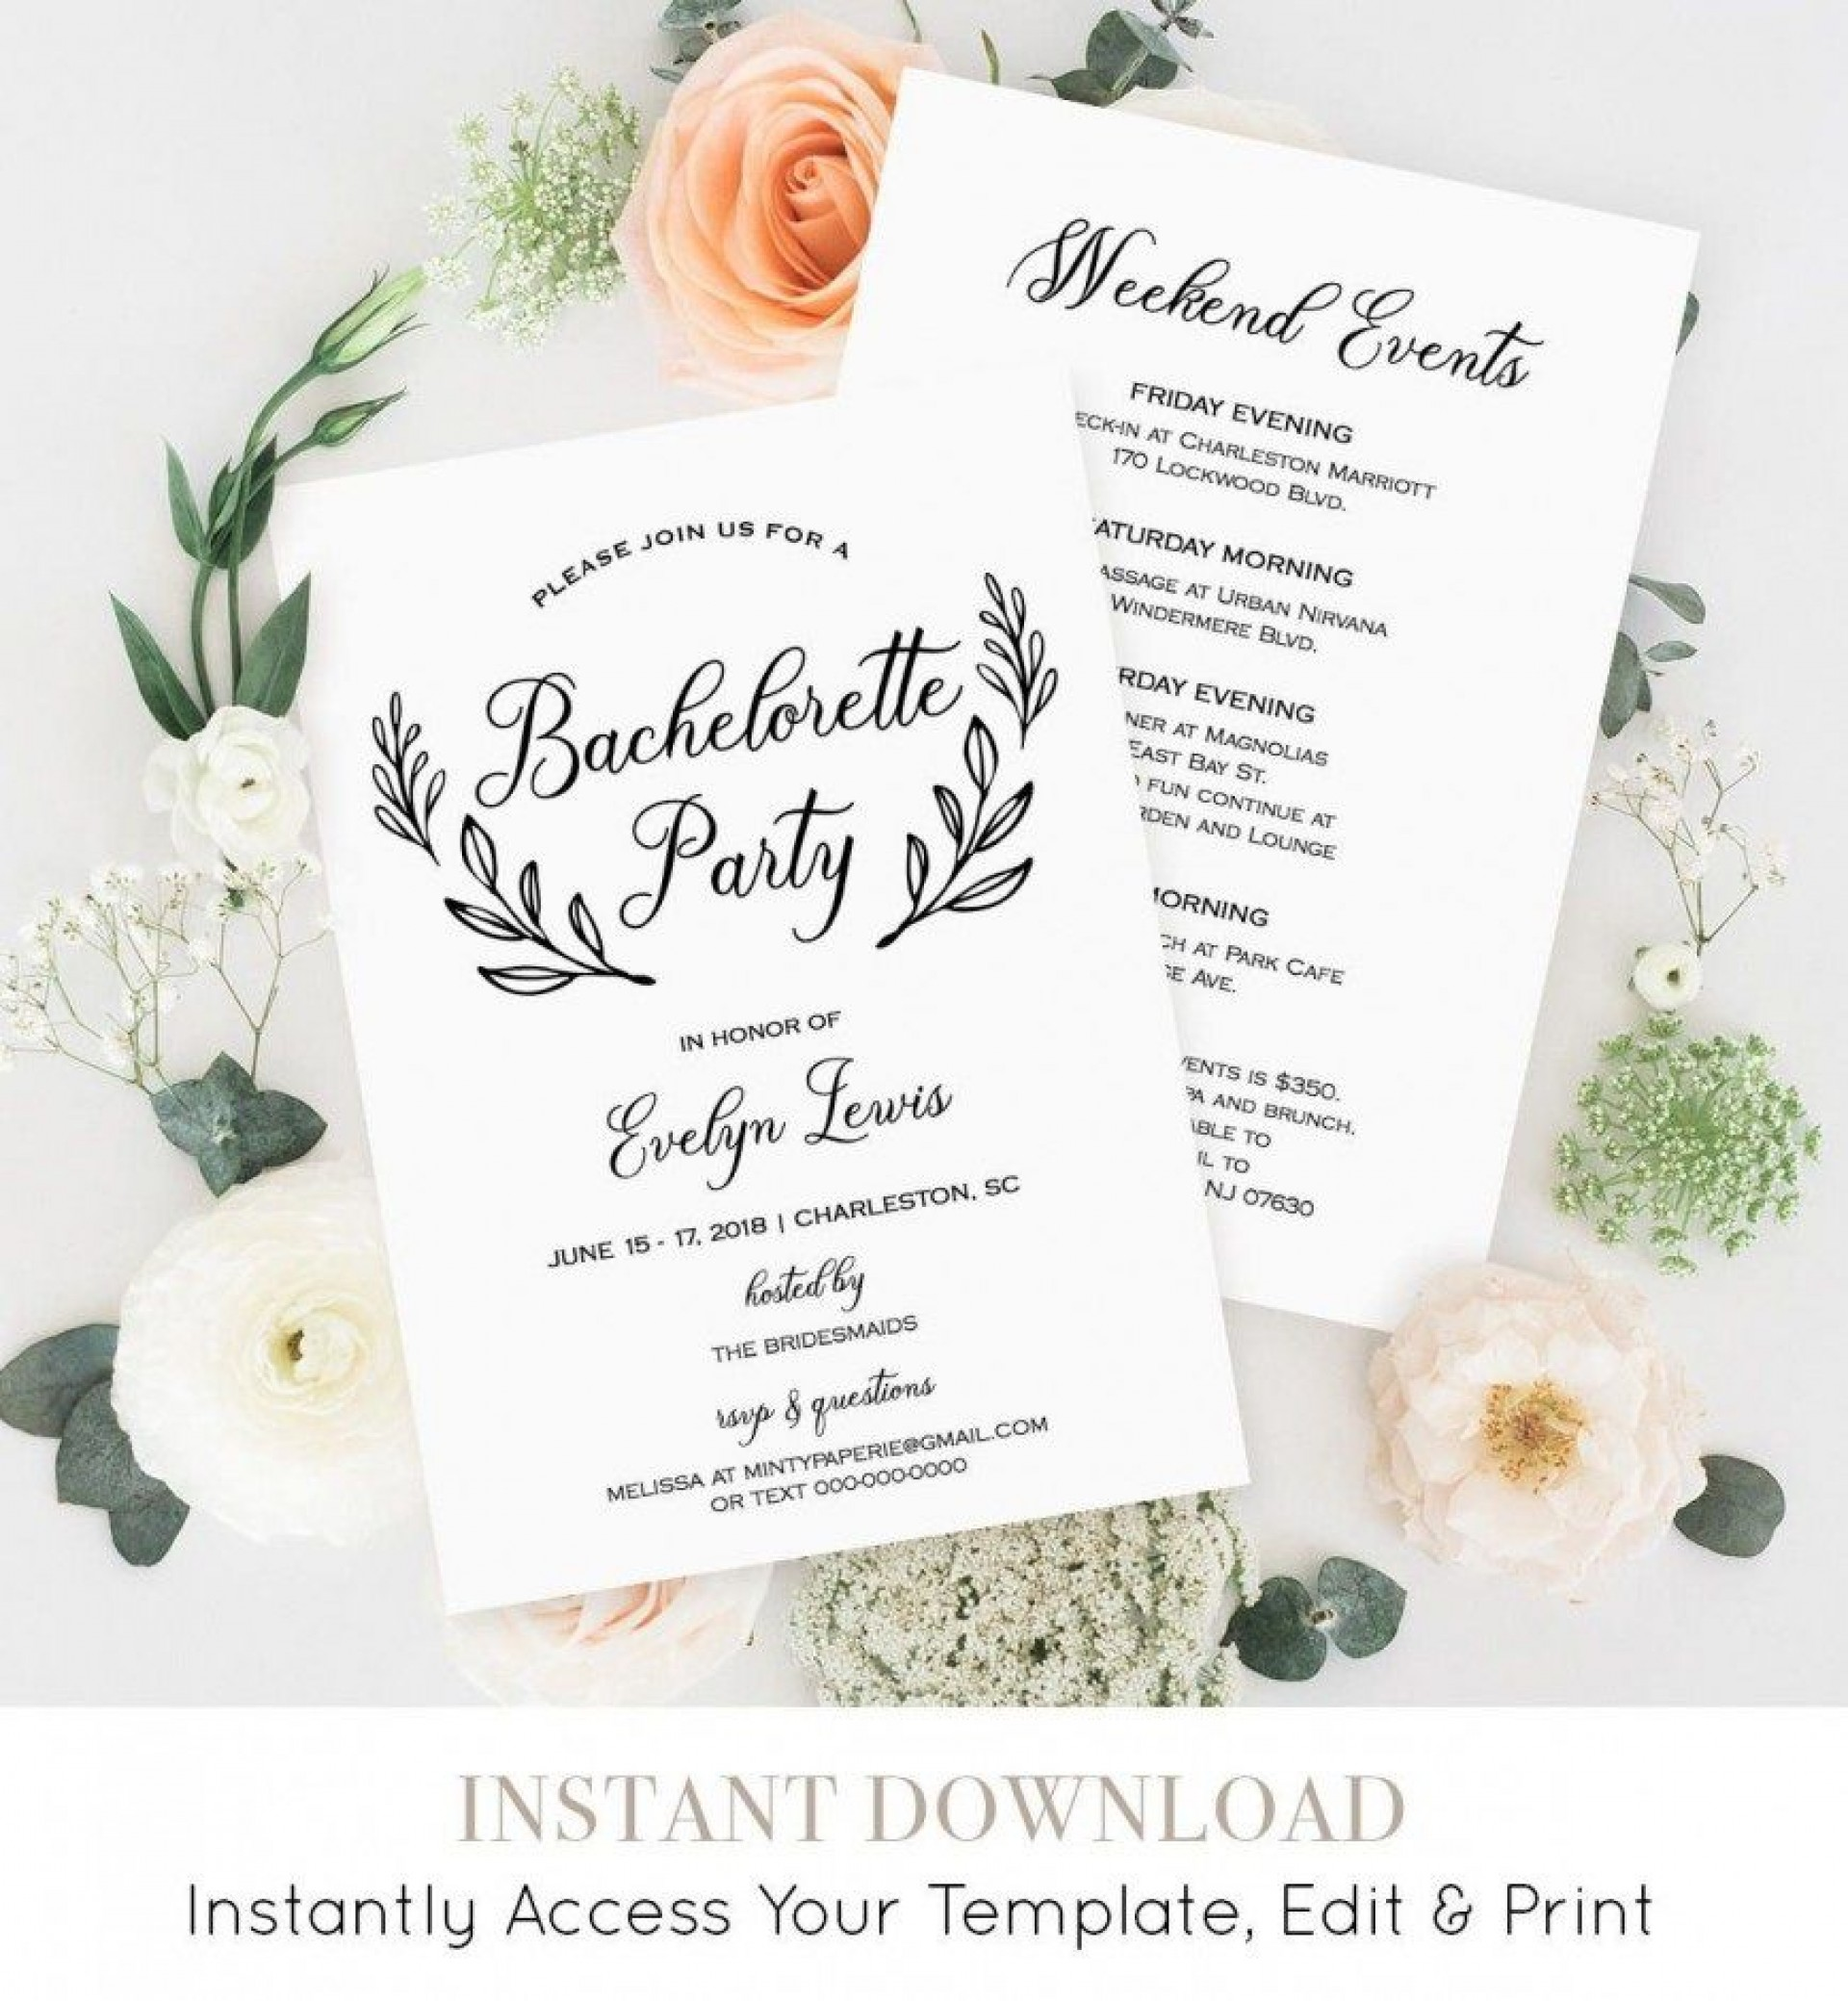 007 Awful Bachelorette Itinerary Template Free Image  Party Editable Download1920